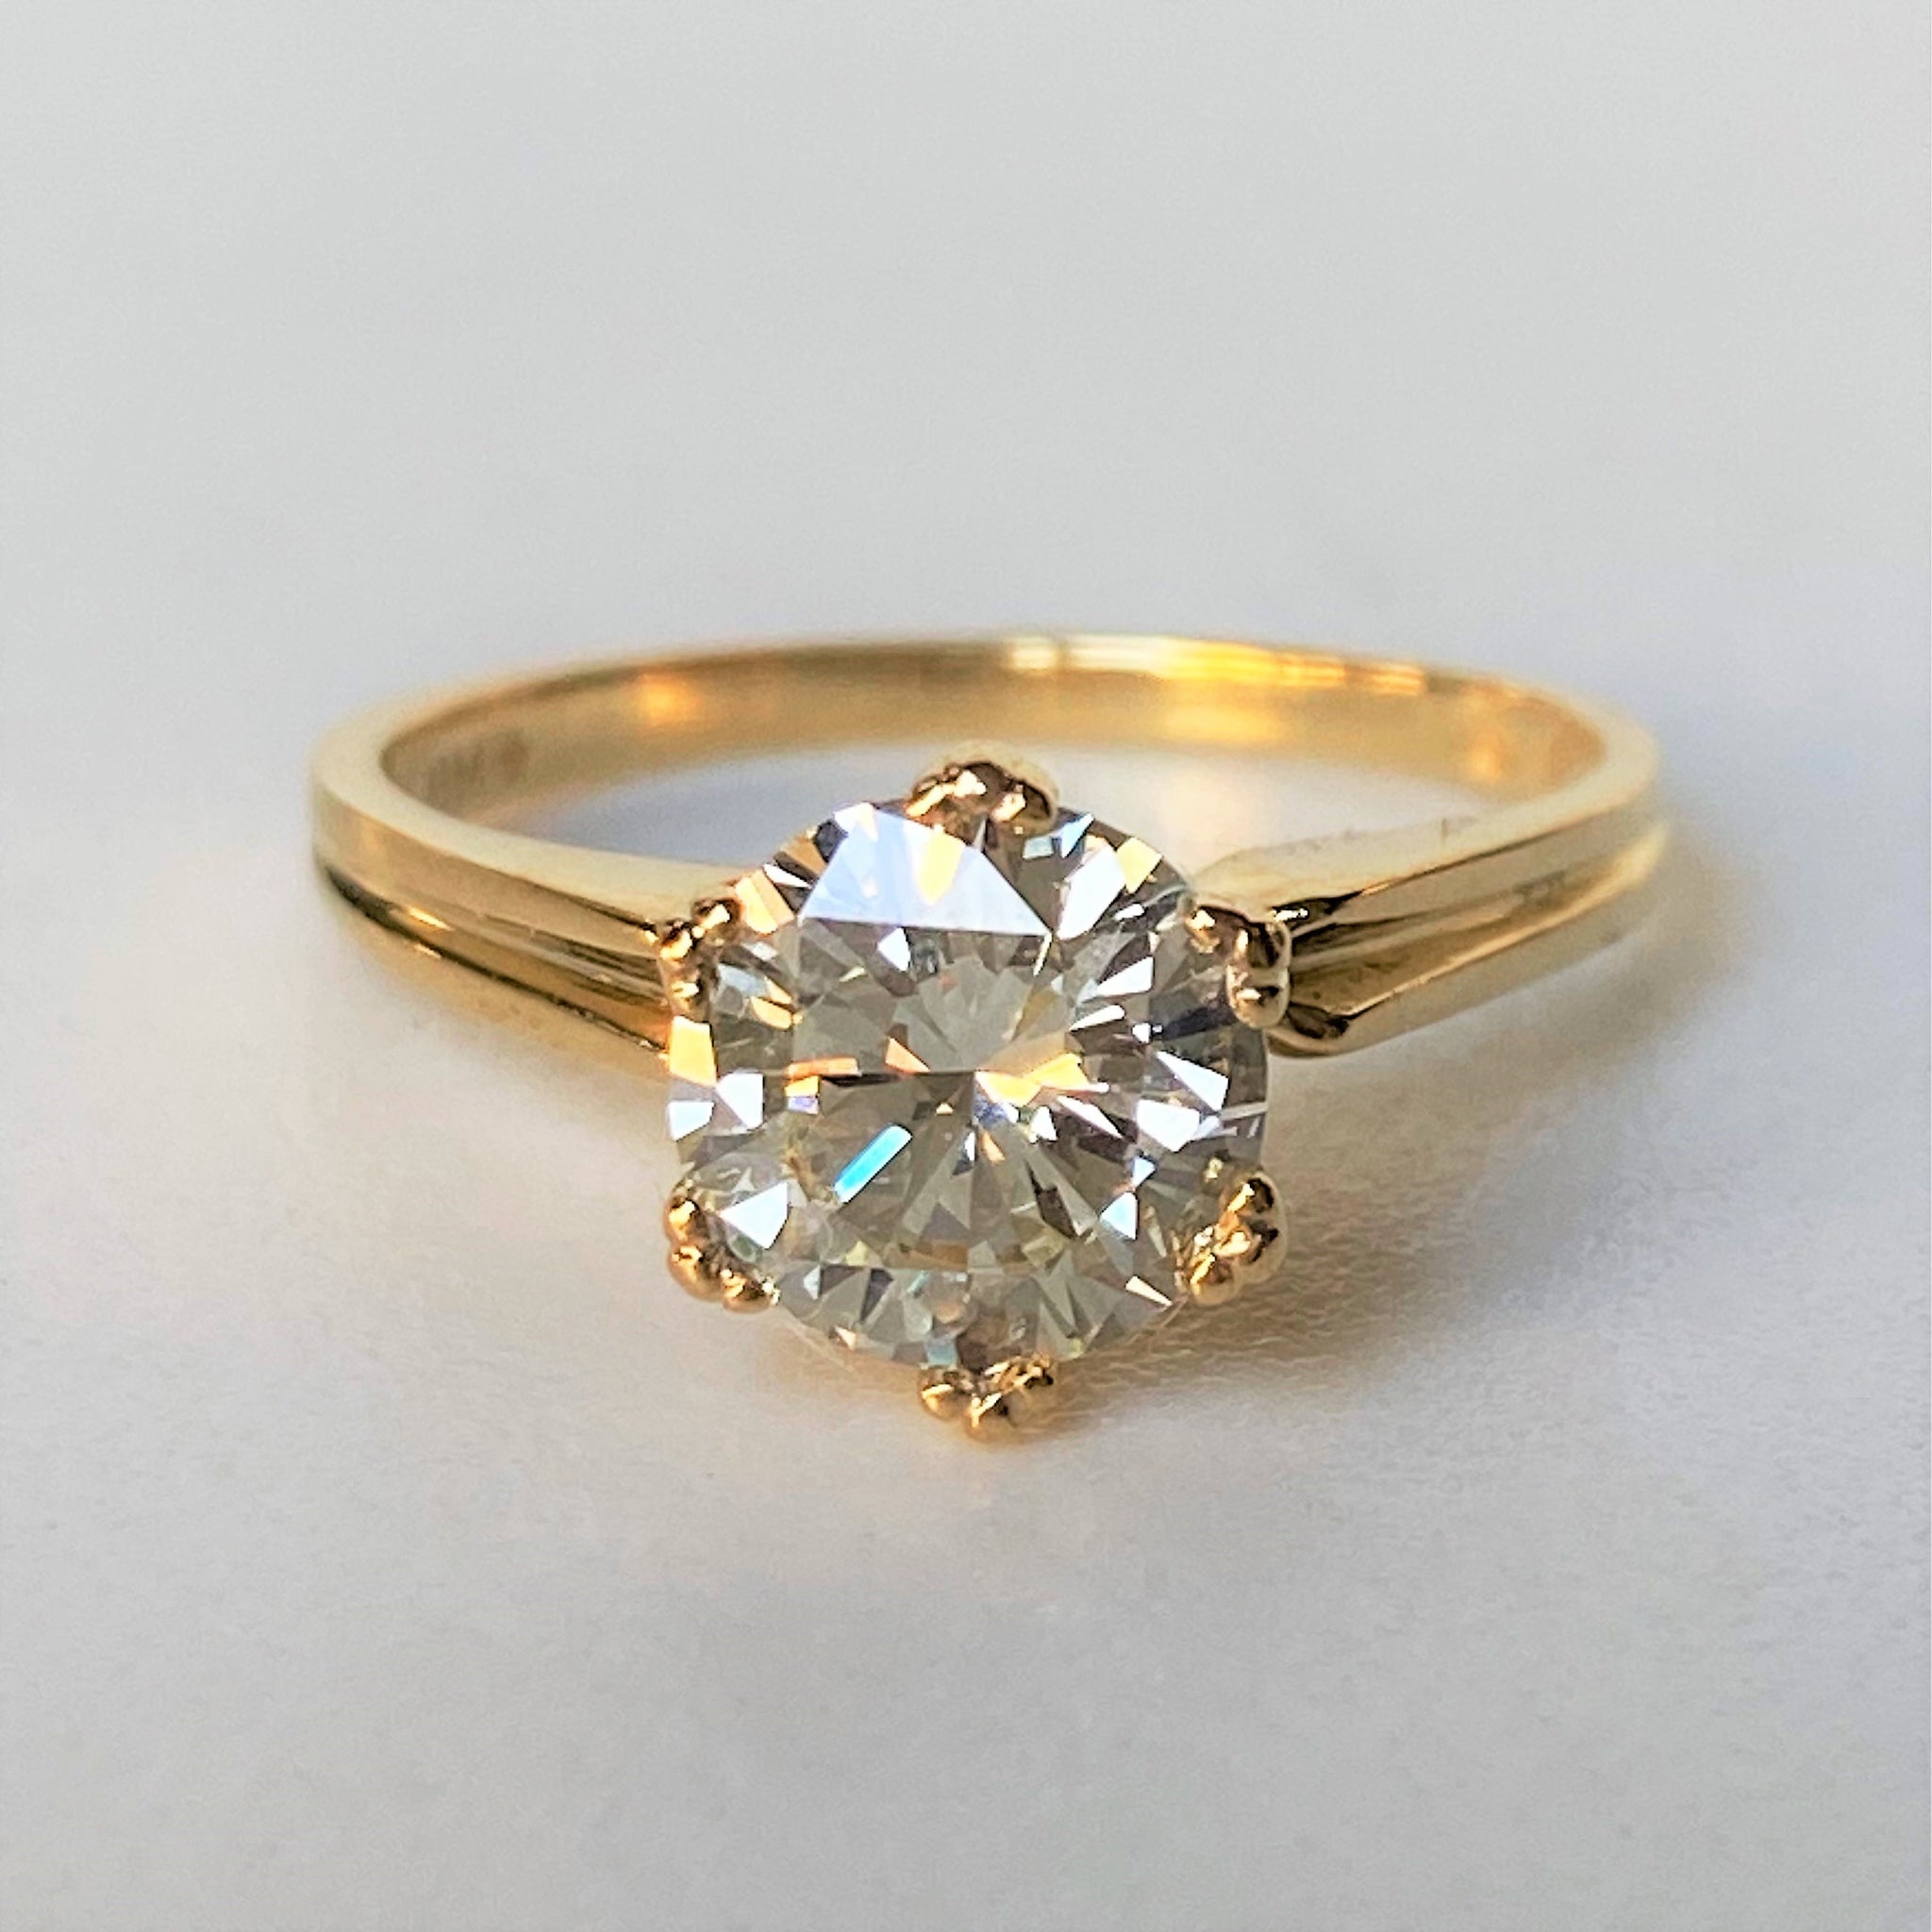 18ct Yellow Gold Solitaire 1.42ct Diamond Ring